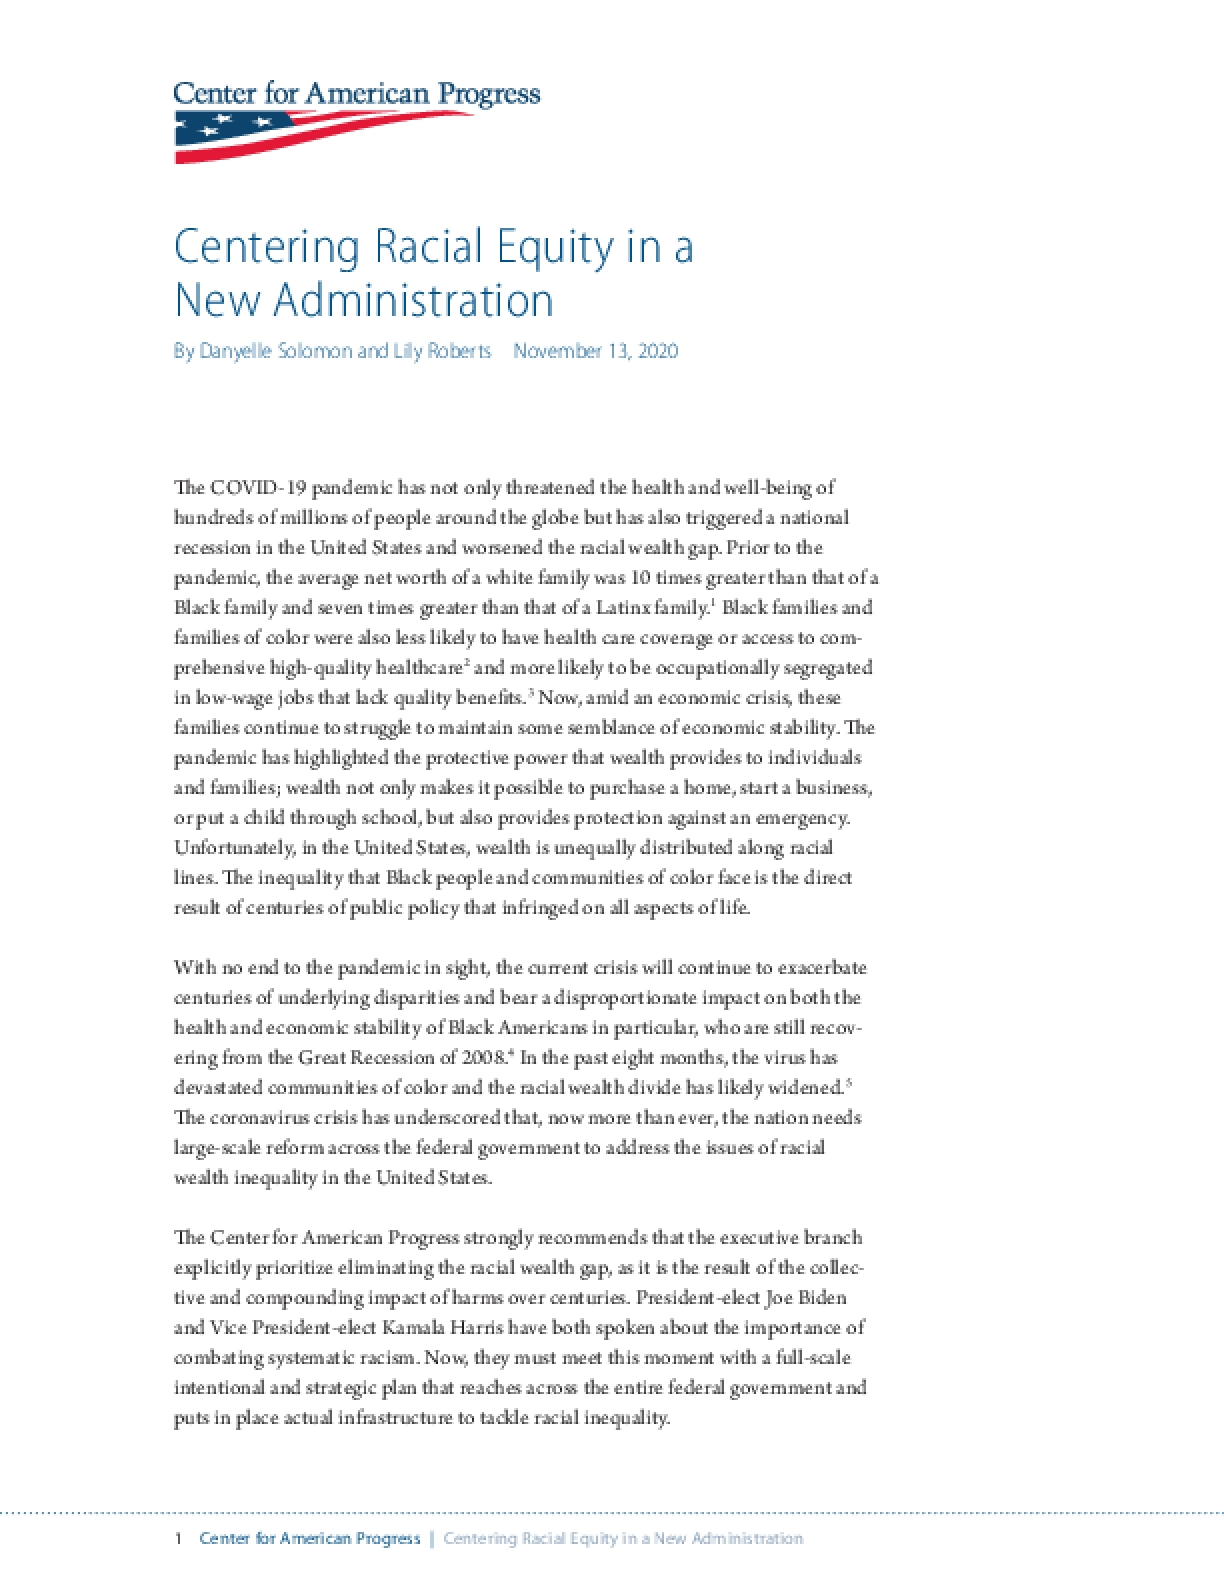 Centering Racial Equity in a New Administration